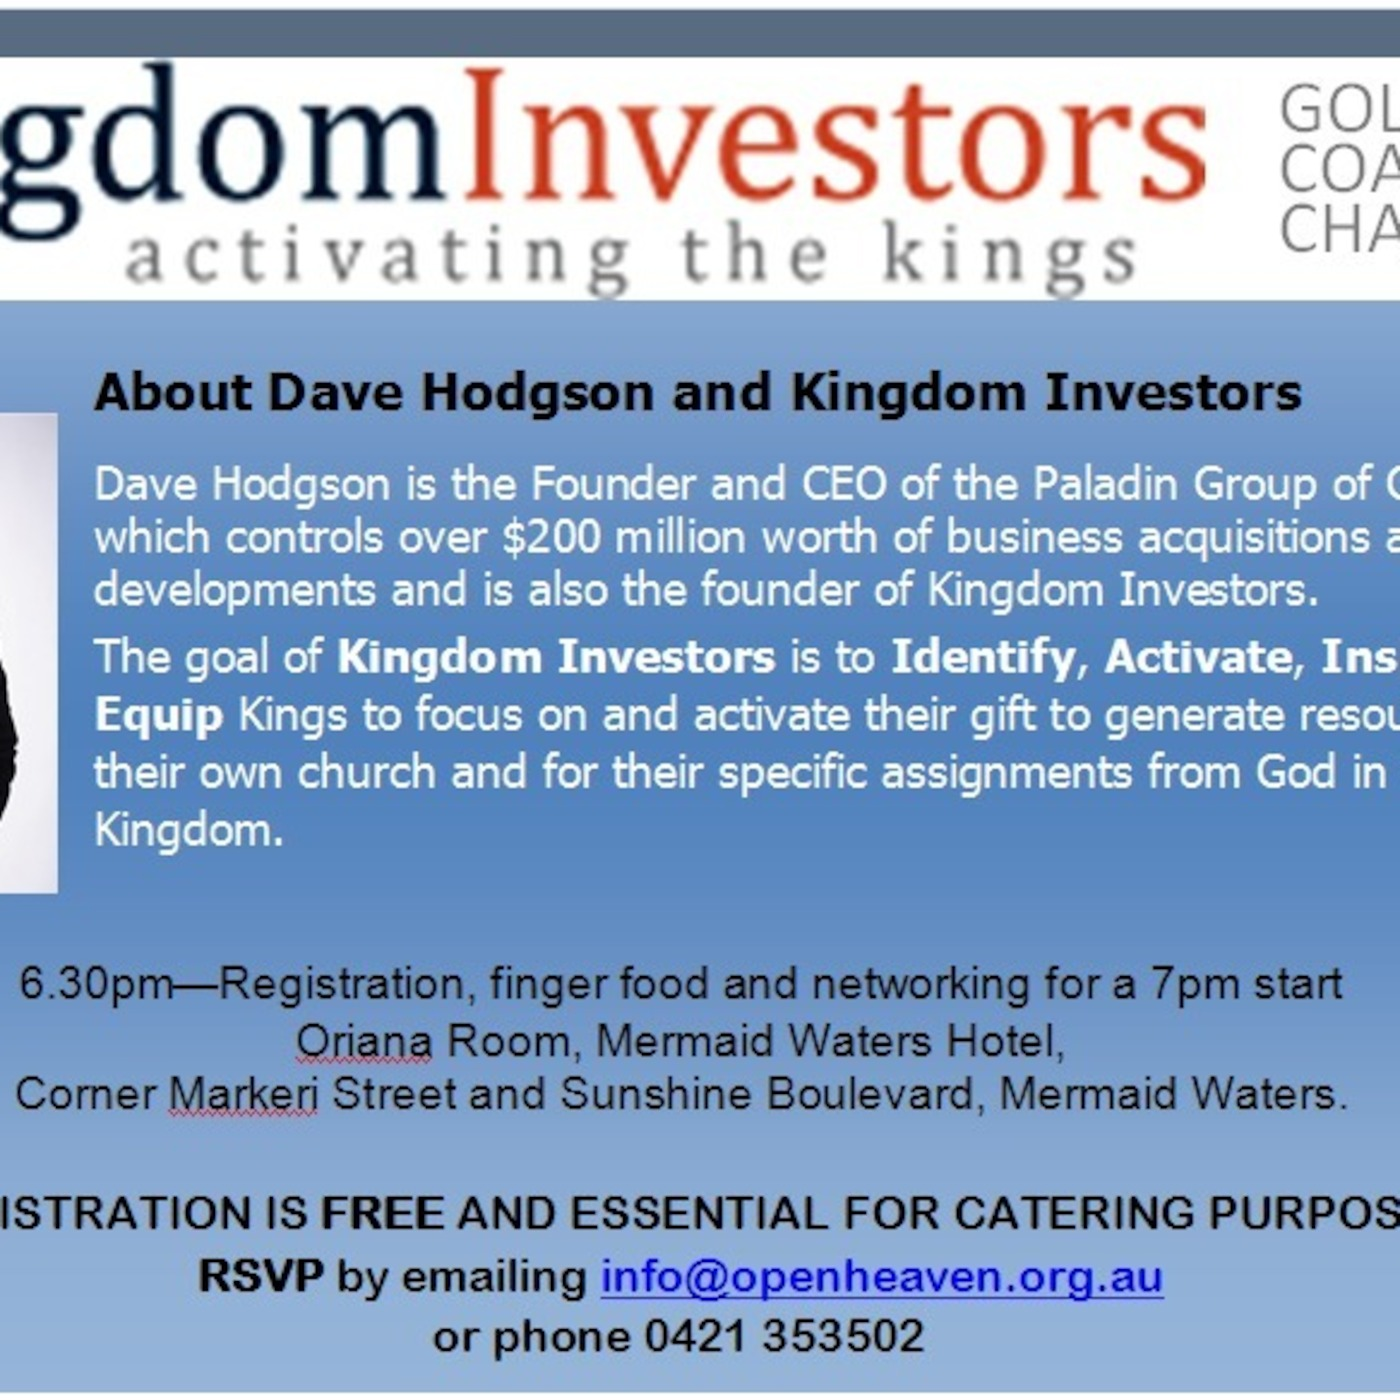 Kingdom Investors - Gold Coast Chapter